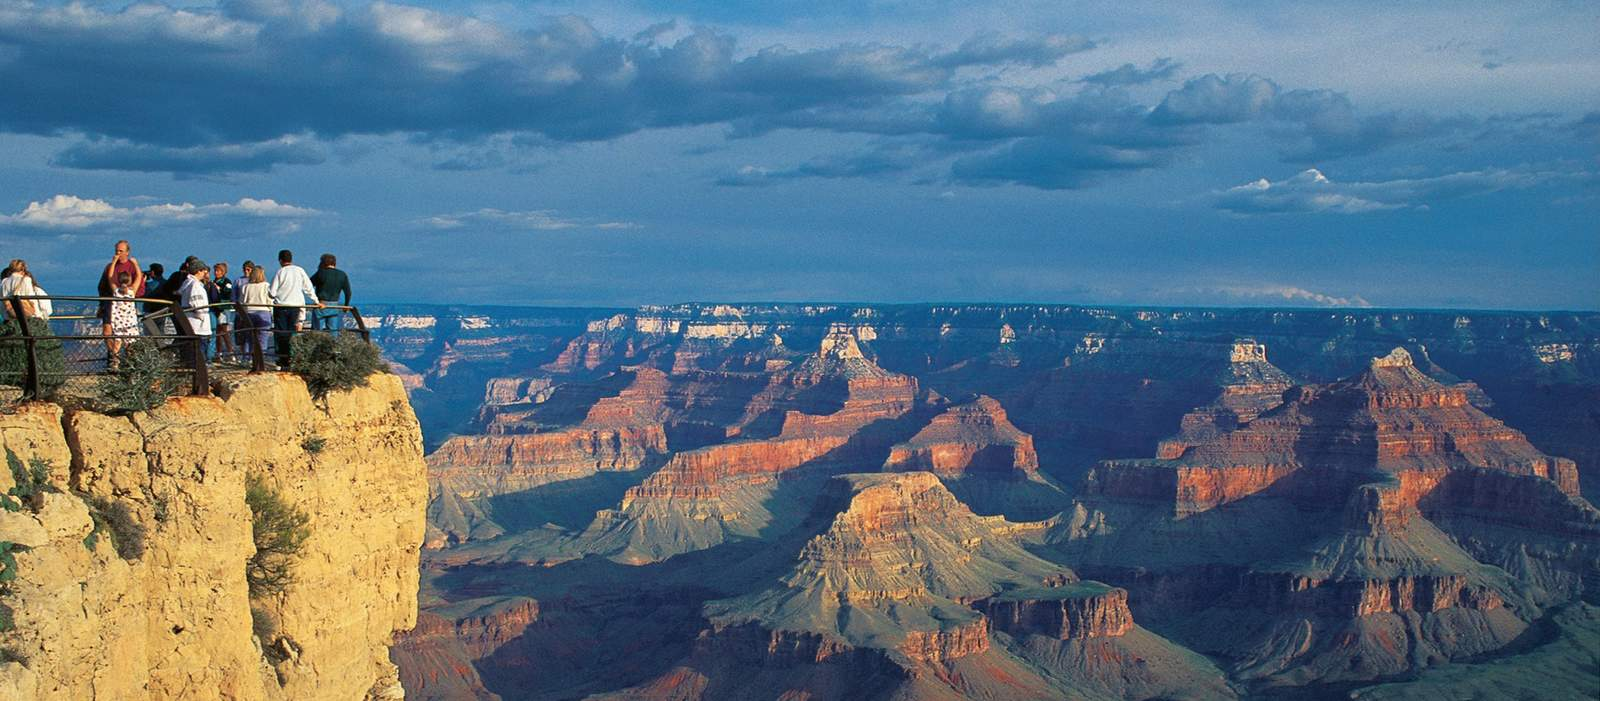 Blick auf den Grand Canyon National Park, Arizona